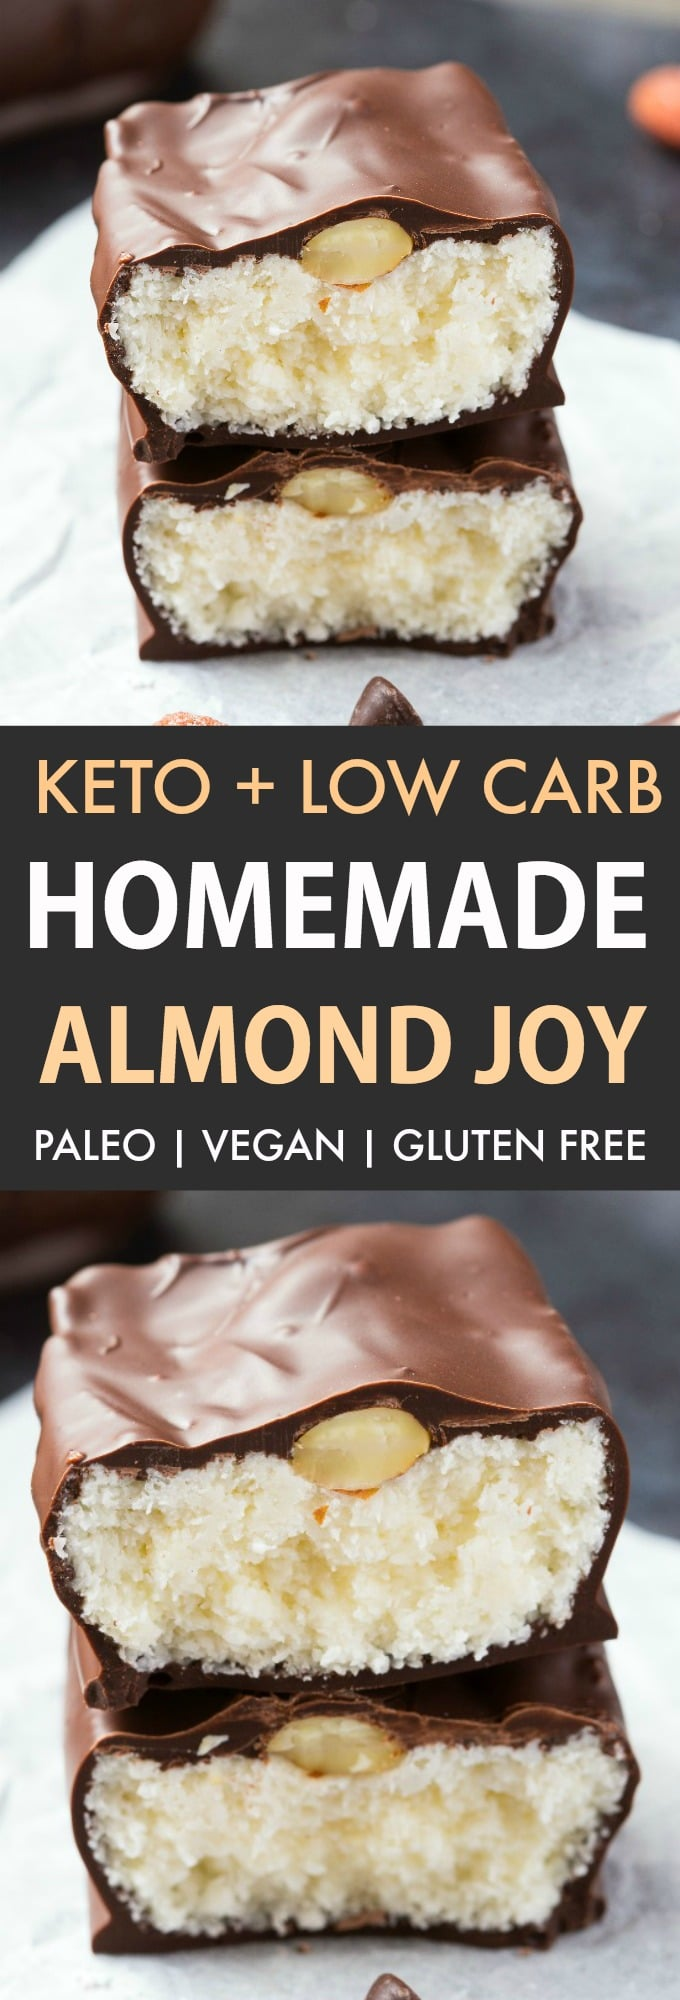 Homemade low carb and keto almond joy bars